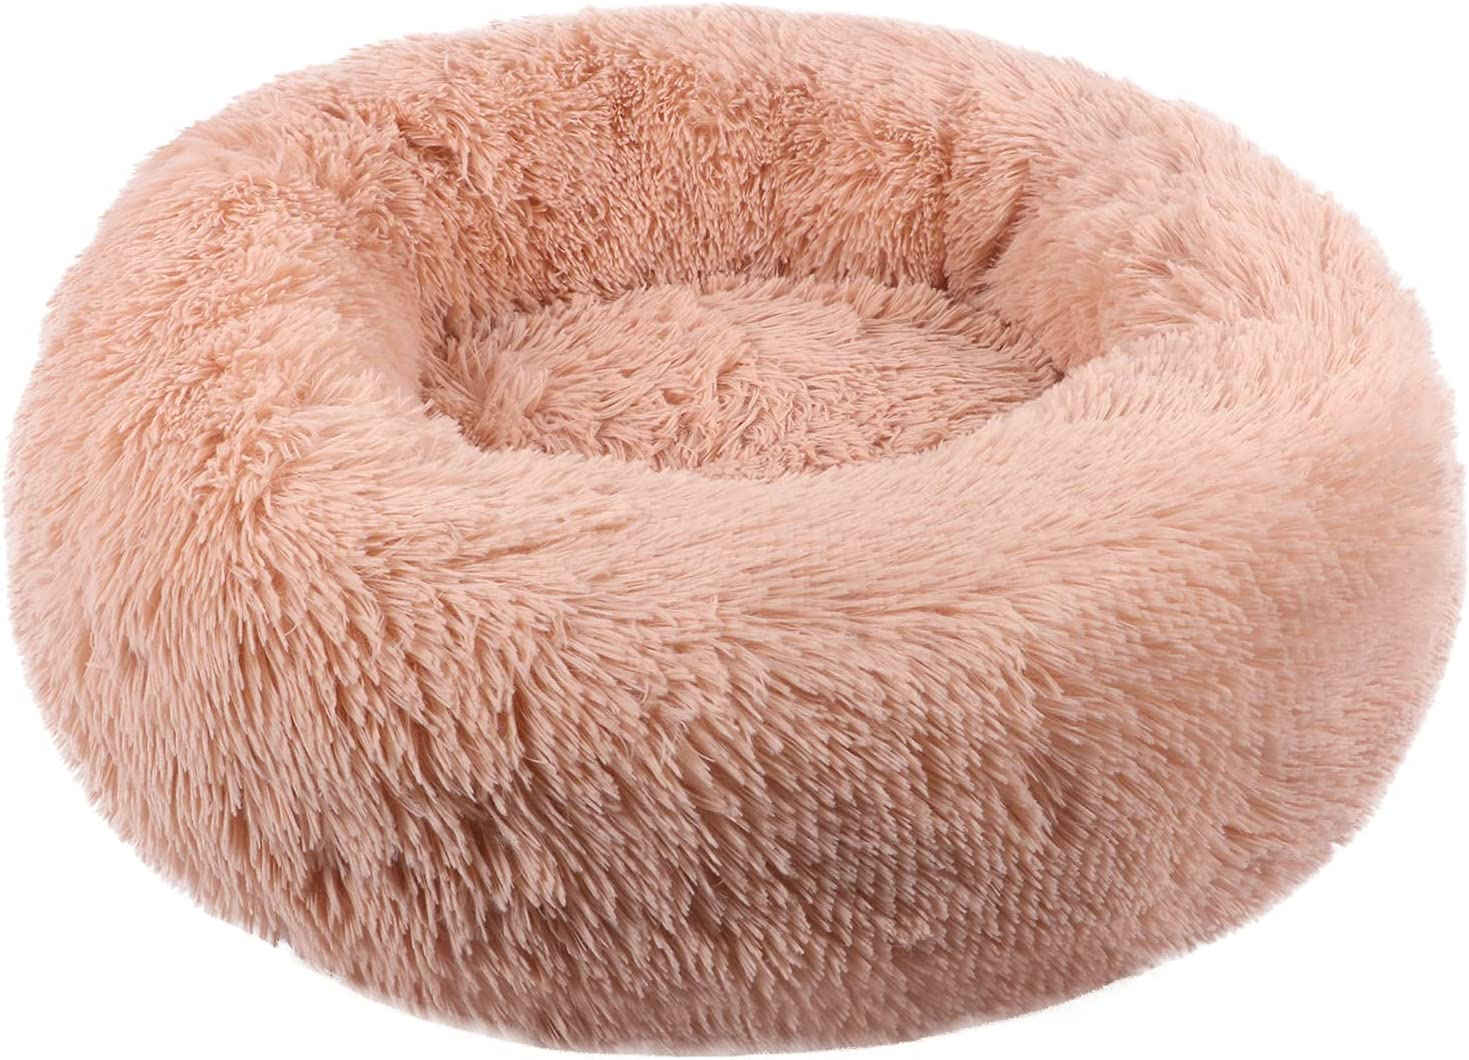 price ZEJEUER Soft Washable Comfortable Pet Bed Round So Sleeping Nest Ranking TOP20